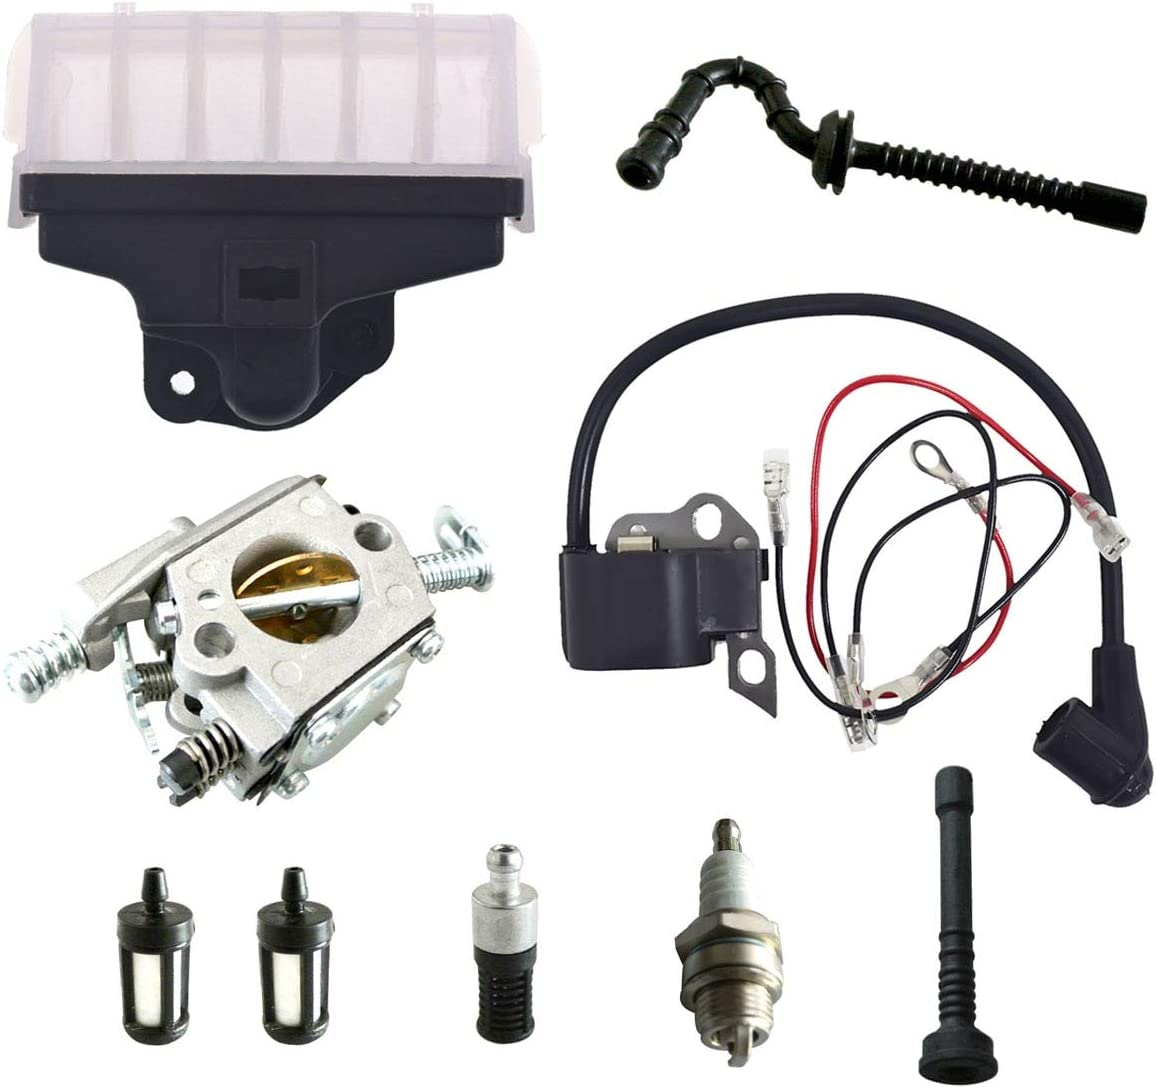 Weekly update Elegant Replacement Parts for Yuton Ignition Kit P Spark Carburetor Coil